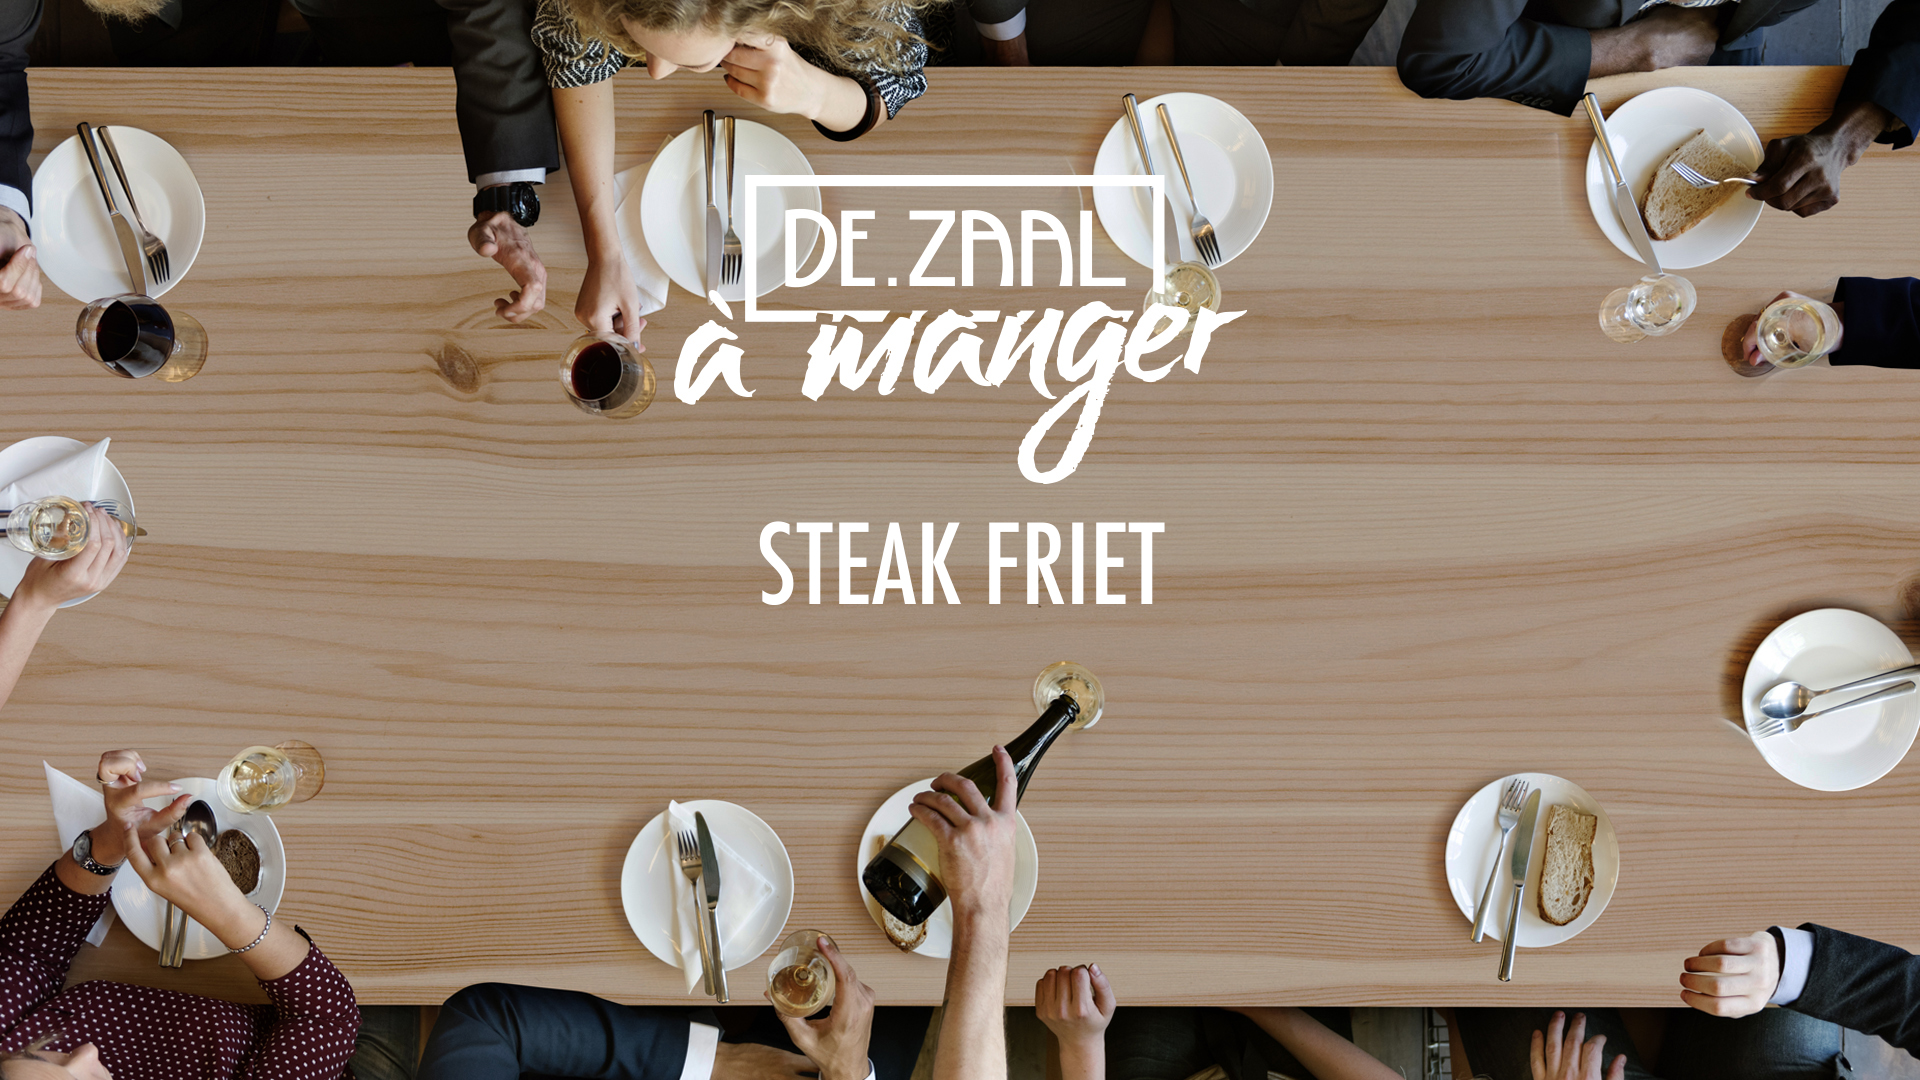 De.Zaal a Manger - Steak friet